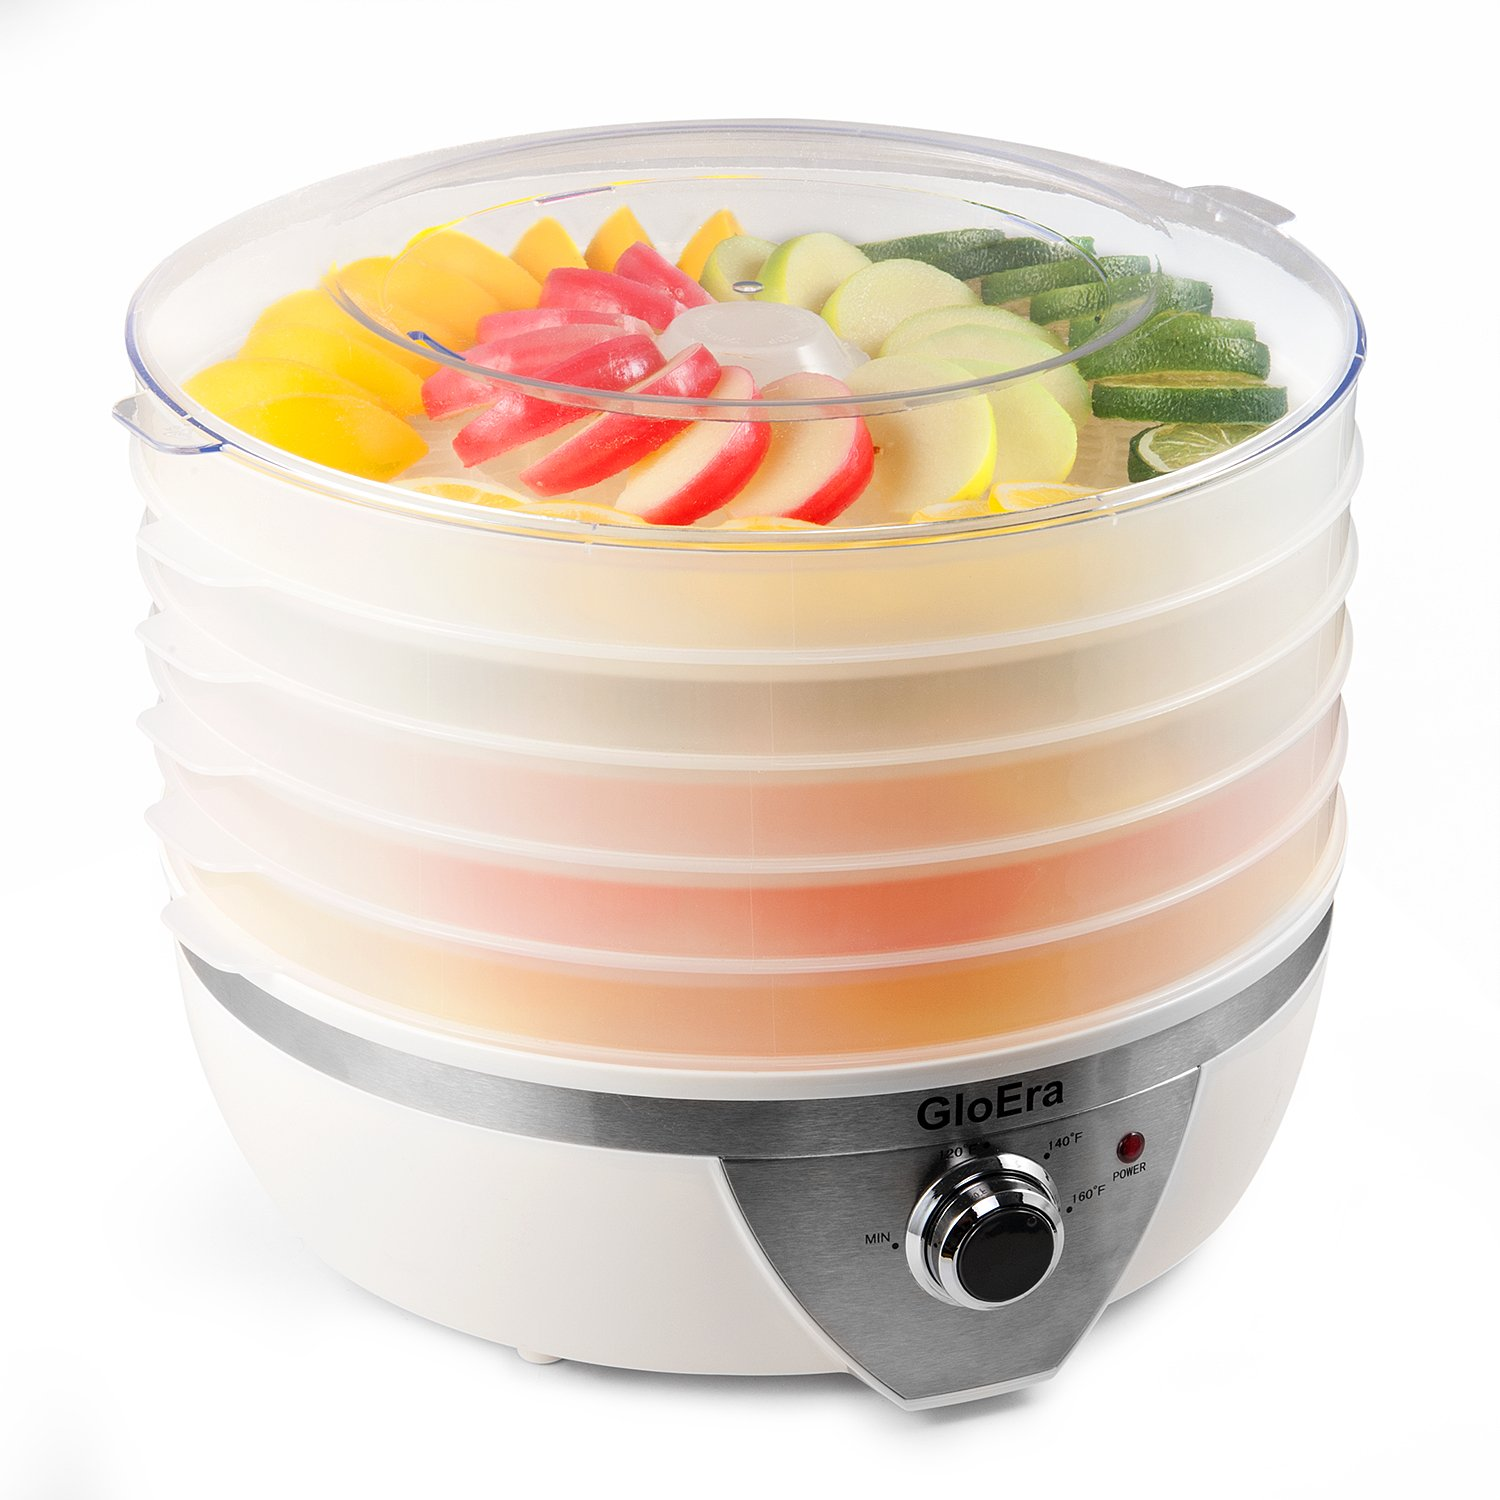 Food Dehydrator Machine,GloEra 5 Layers Electric Fruit dryer Snackmaster with BPA Free and Overheat Protection